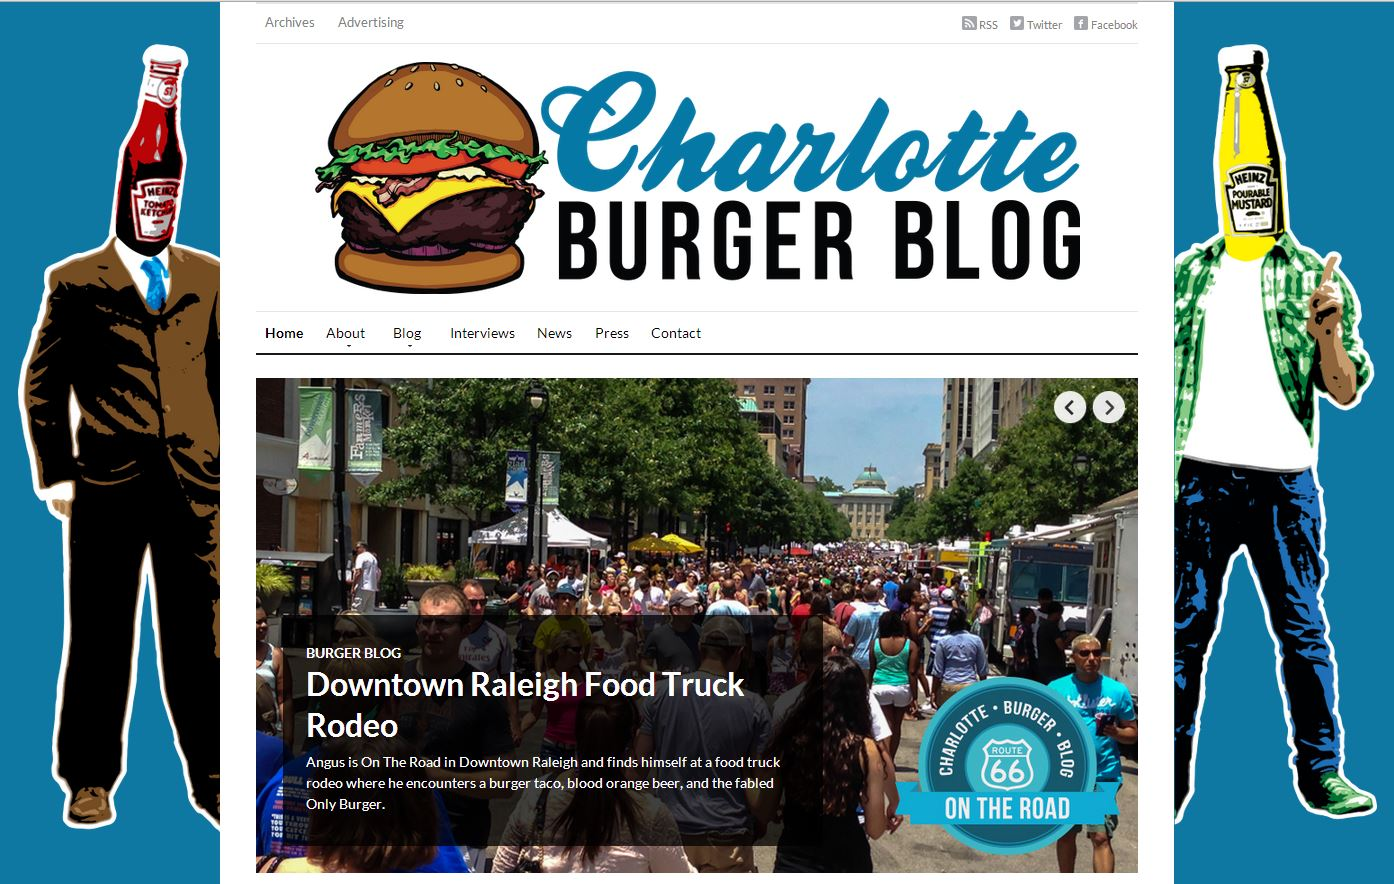 burger_conquest_best_burger_blogs_bloggers_food_2014_charlotte_burger_blog